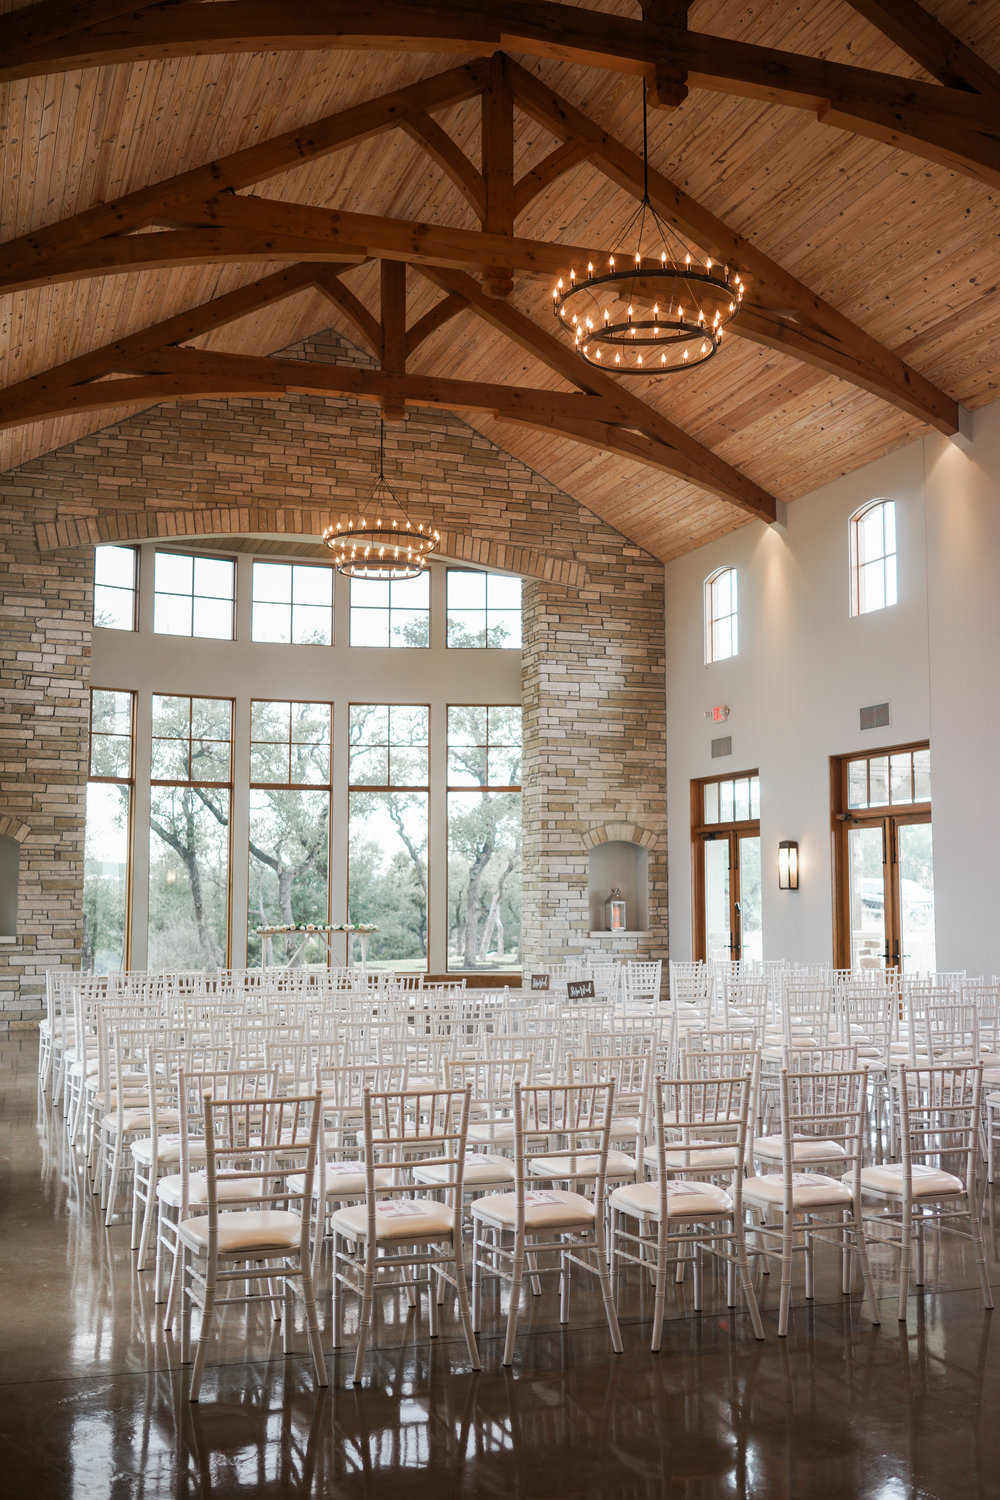 Canyonwood Ridge wedding photographer based out of Austin, Texas. Beautiful ceremony space with hill country views.